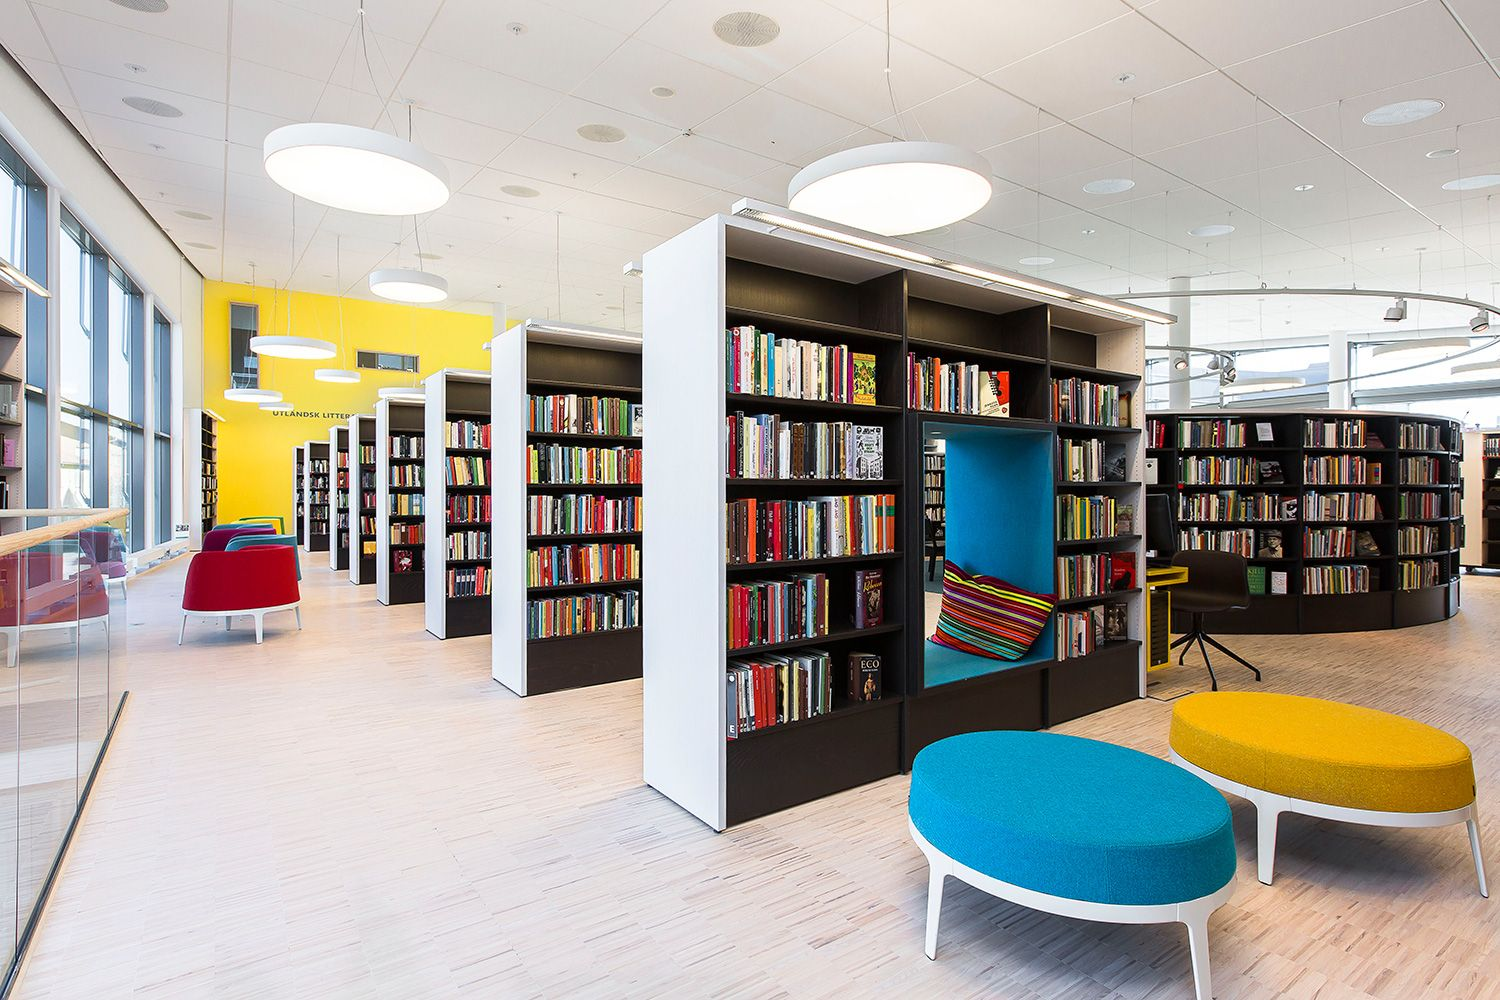 Great The Culture House In Vallentuna North Of Stockholm, Contains Special  Designed Interior Design Solutions With High Functionality And Quality U2013  Just As The ...